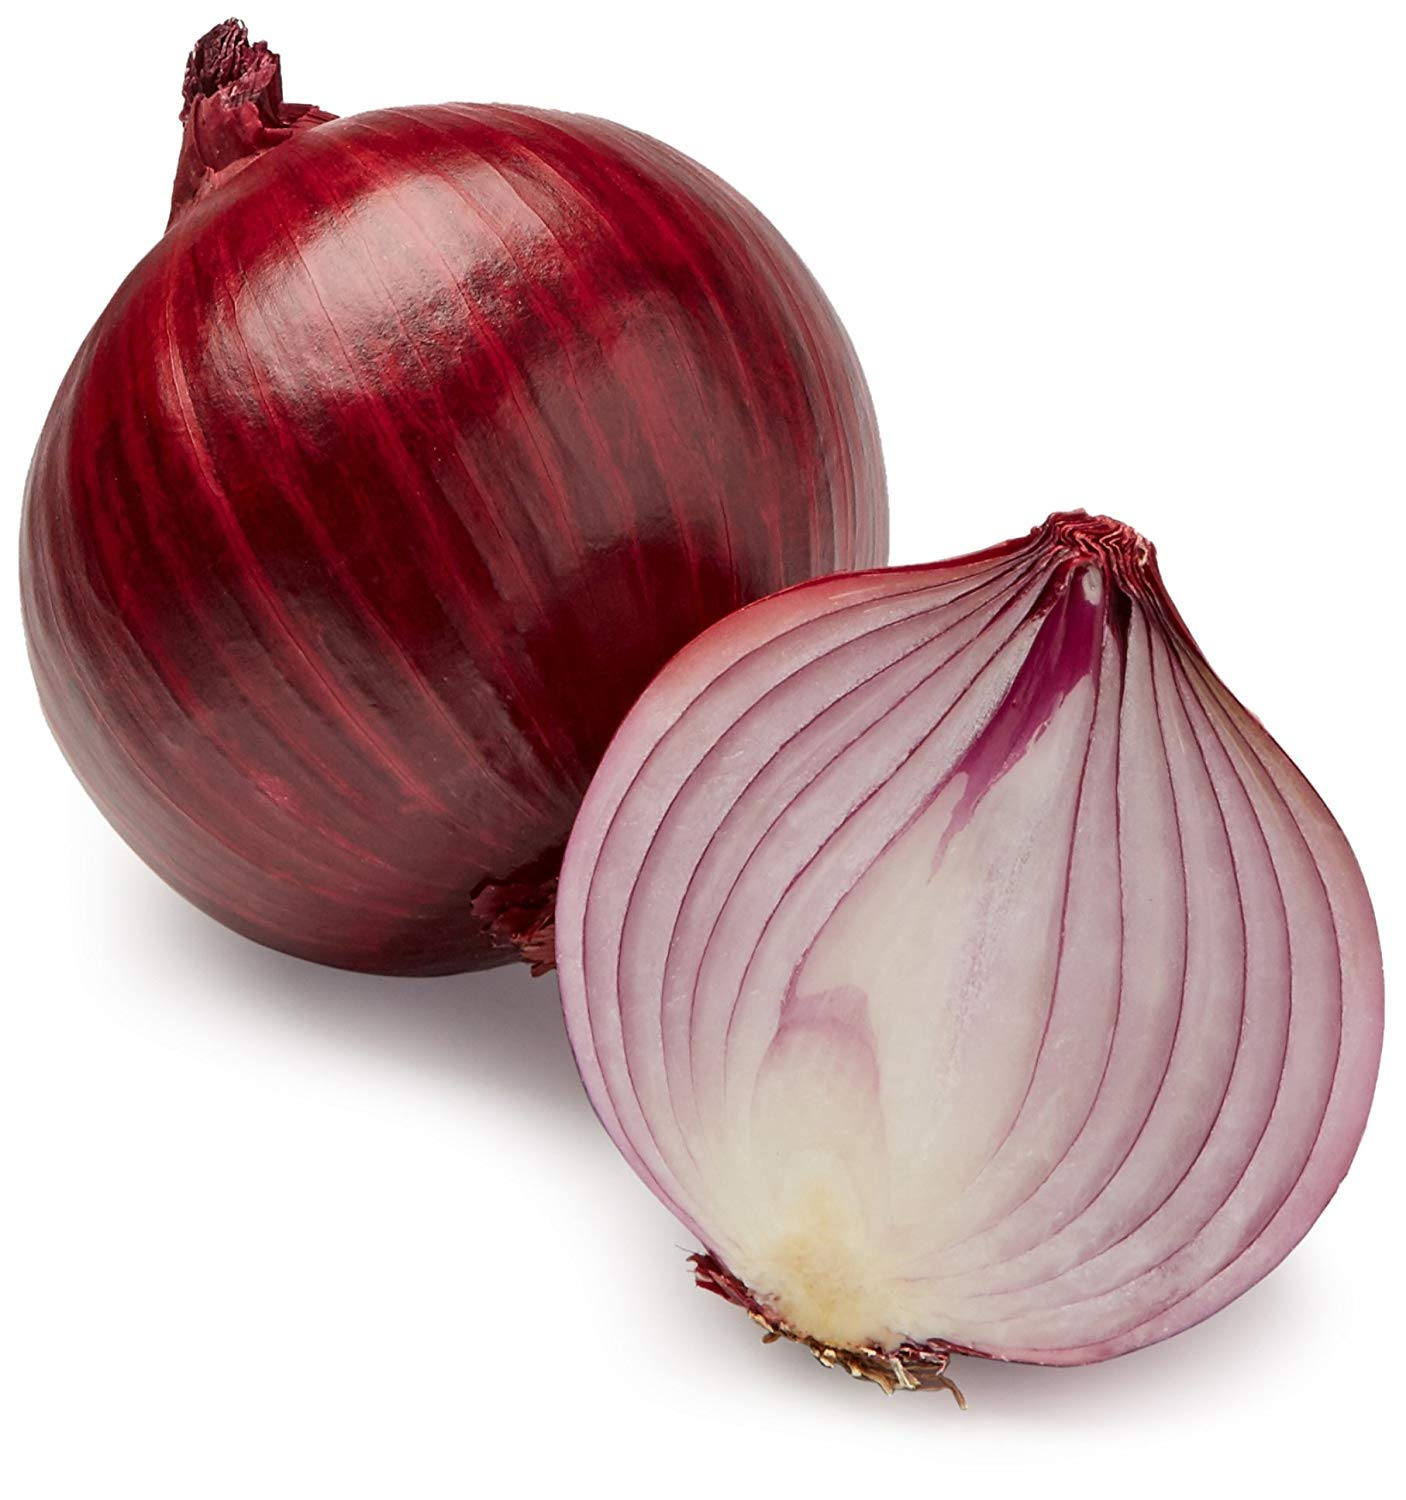 PRIME TIME Premium Quality Red Onion (1Kg): Amazon.in: Grocery & Gourmet Foods